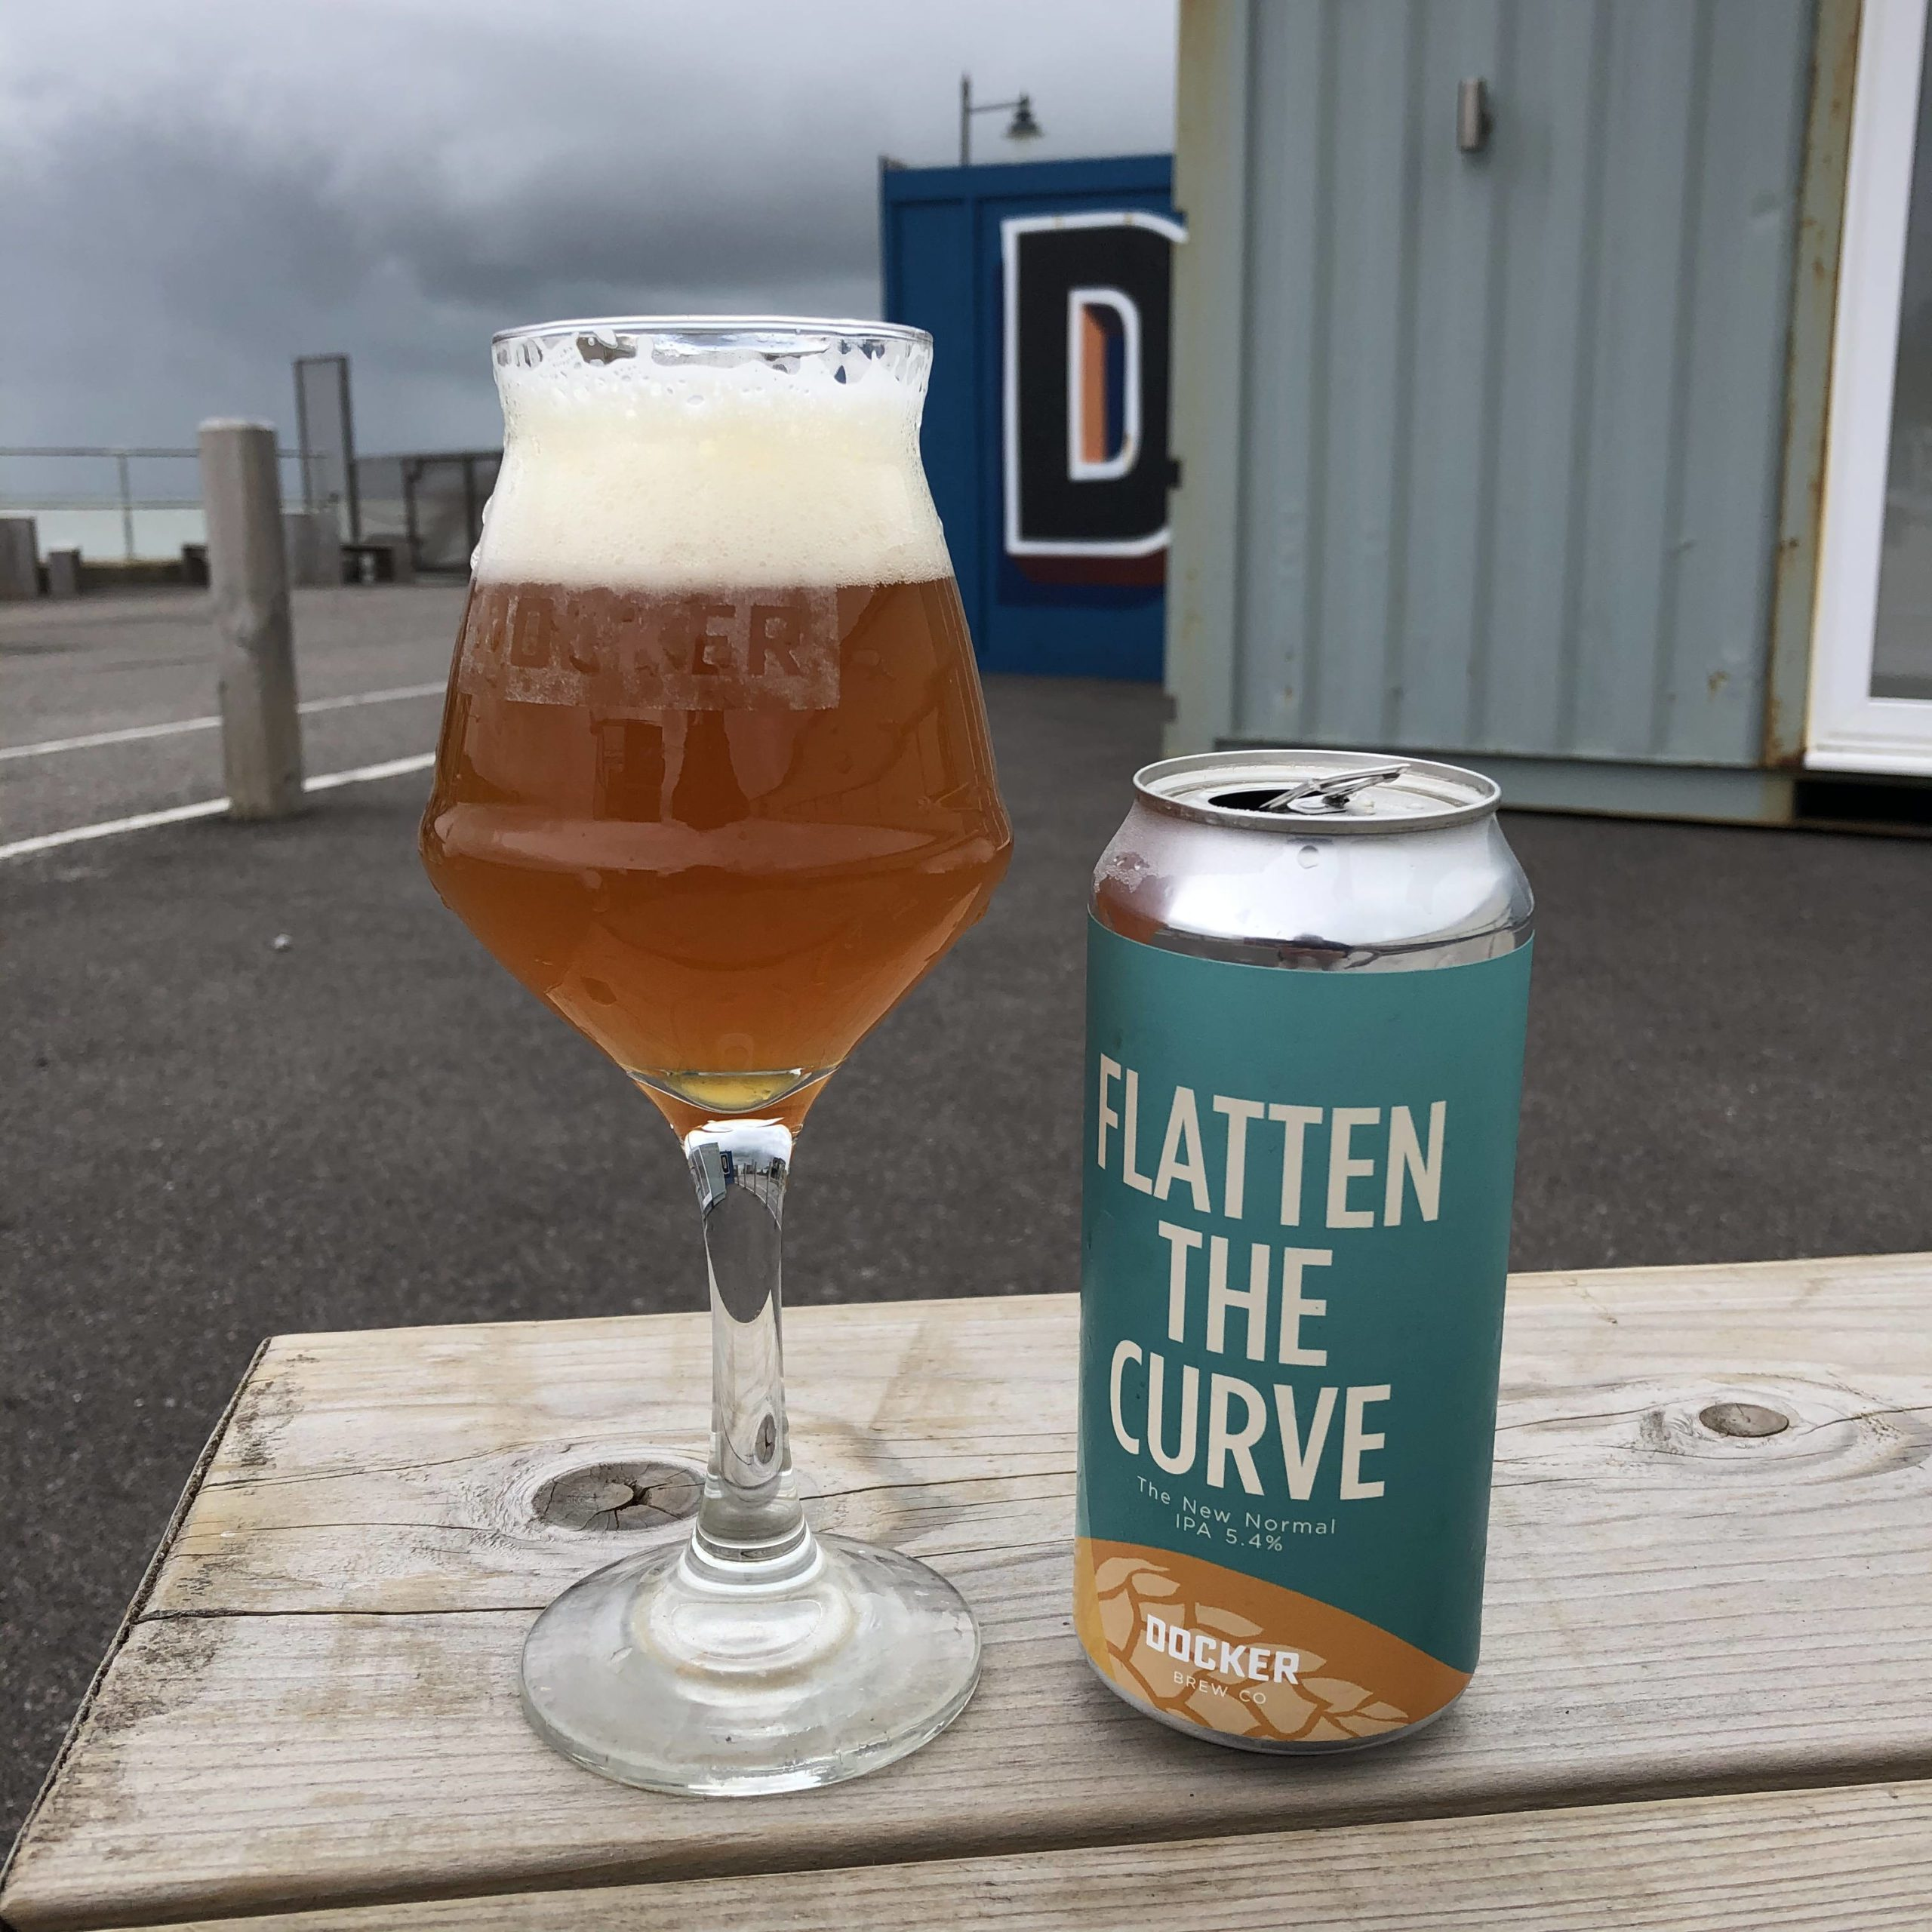 Docker Beer Flatten The Curve